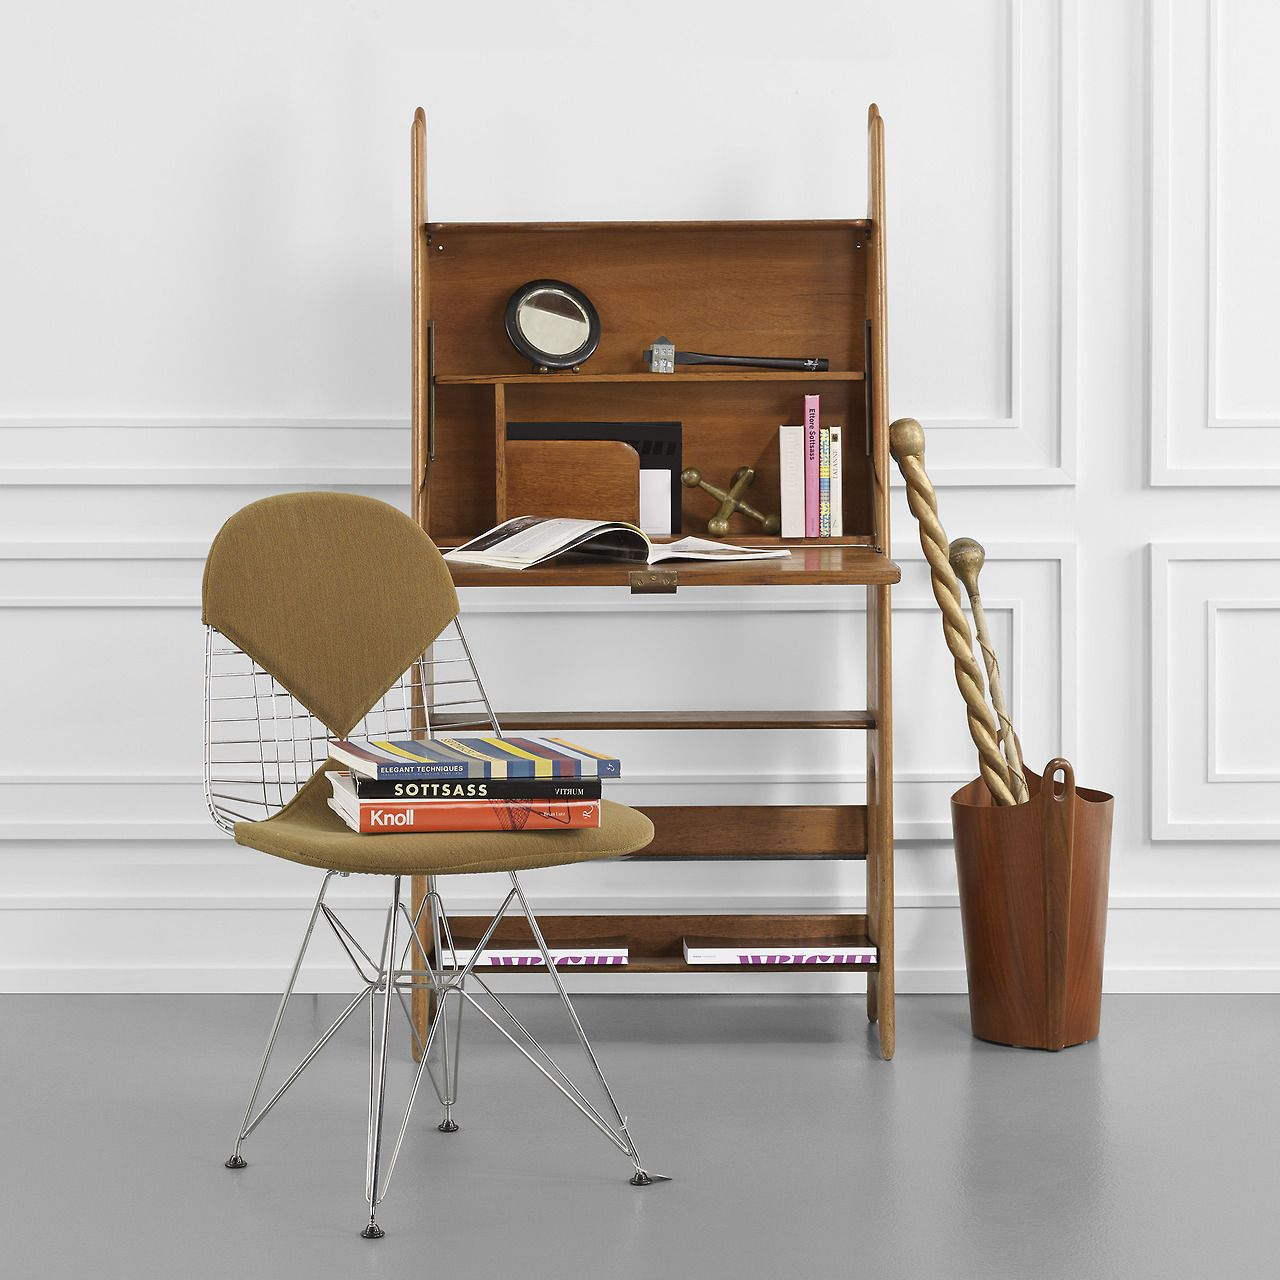 ray and charles eames dkr rene gabriel drop front desk master bedroom cabinet ideas bedroom cloth cabinet ideas